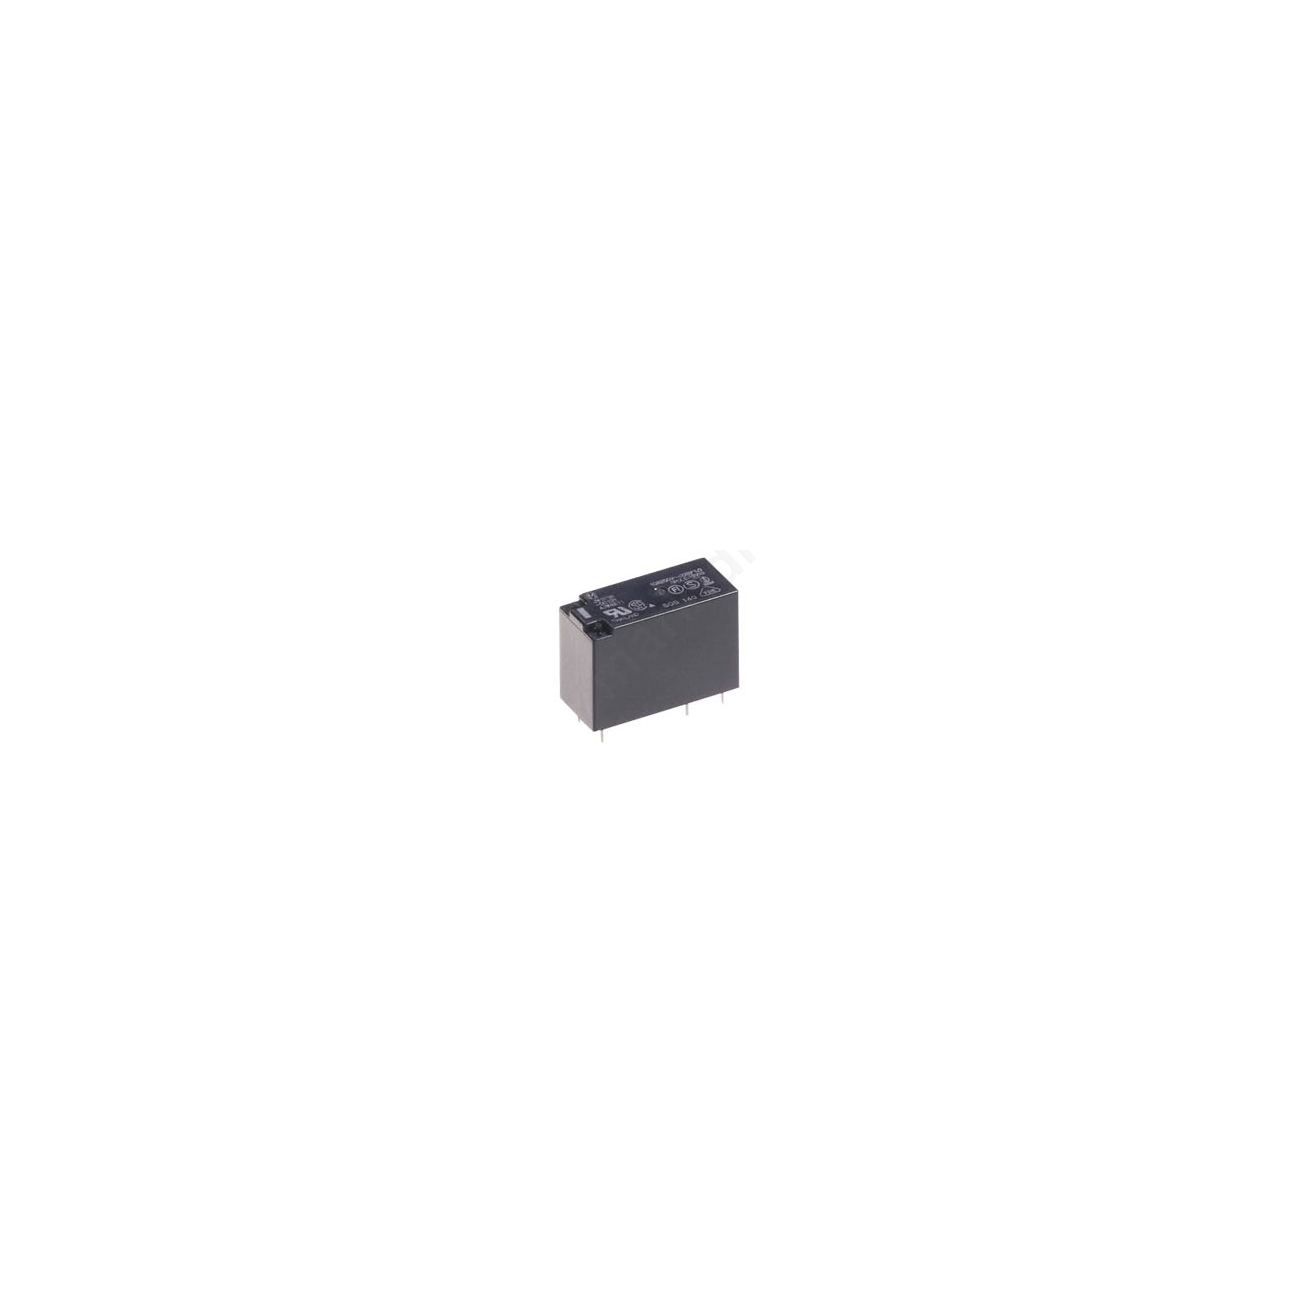 Spdt Pcb Mount Non Latching Relay Through Hole 12v Dc Dpdt Bistable